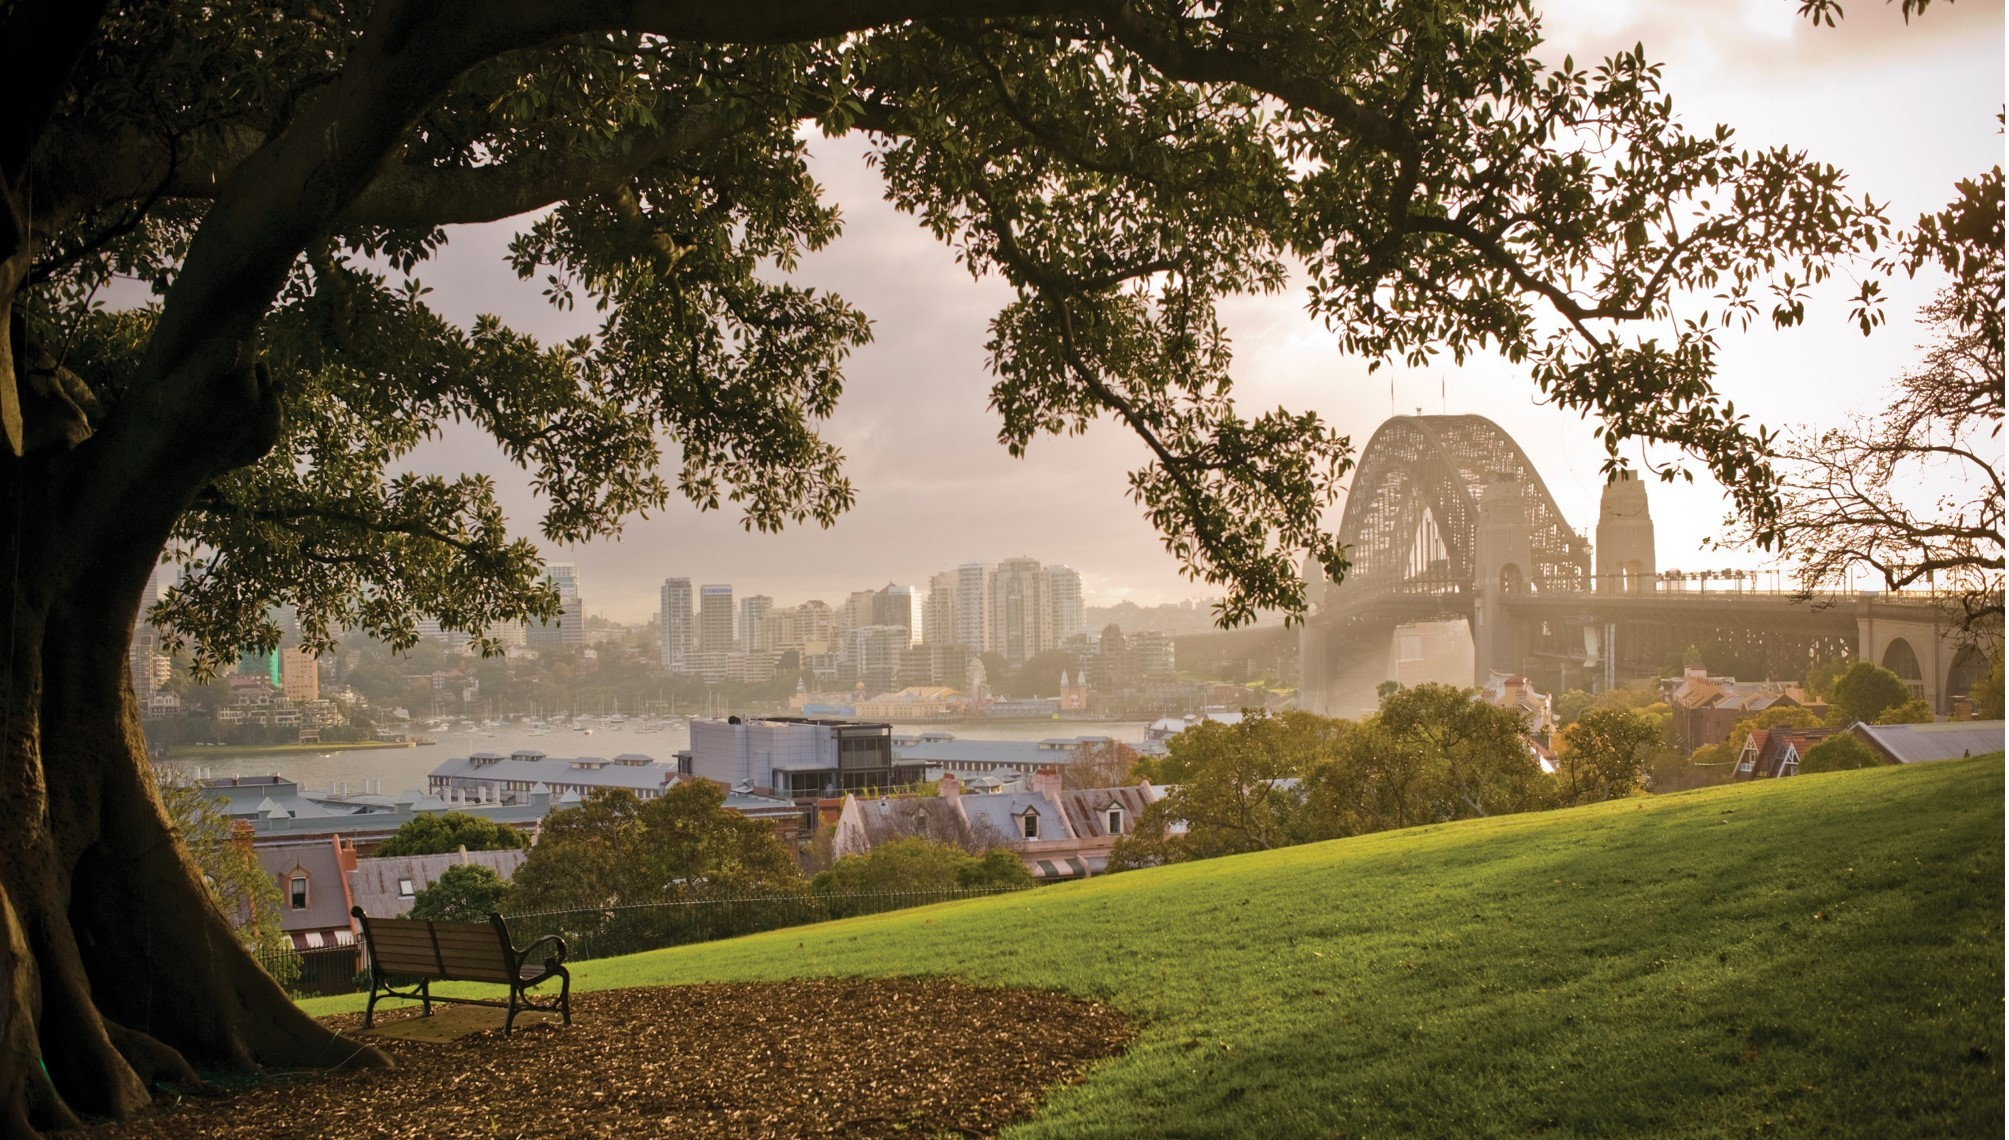 Travel tips every visitor to Sydney needs to know